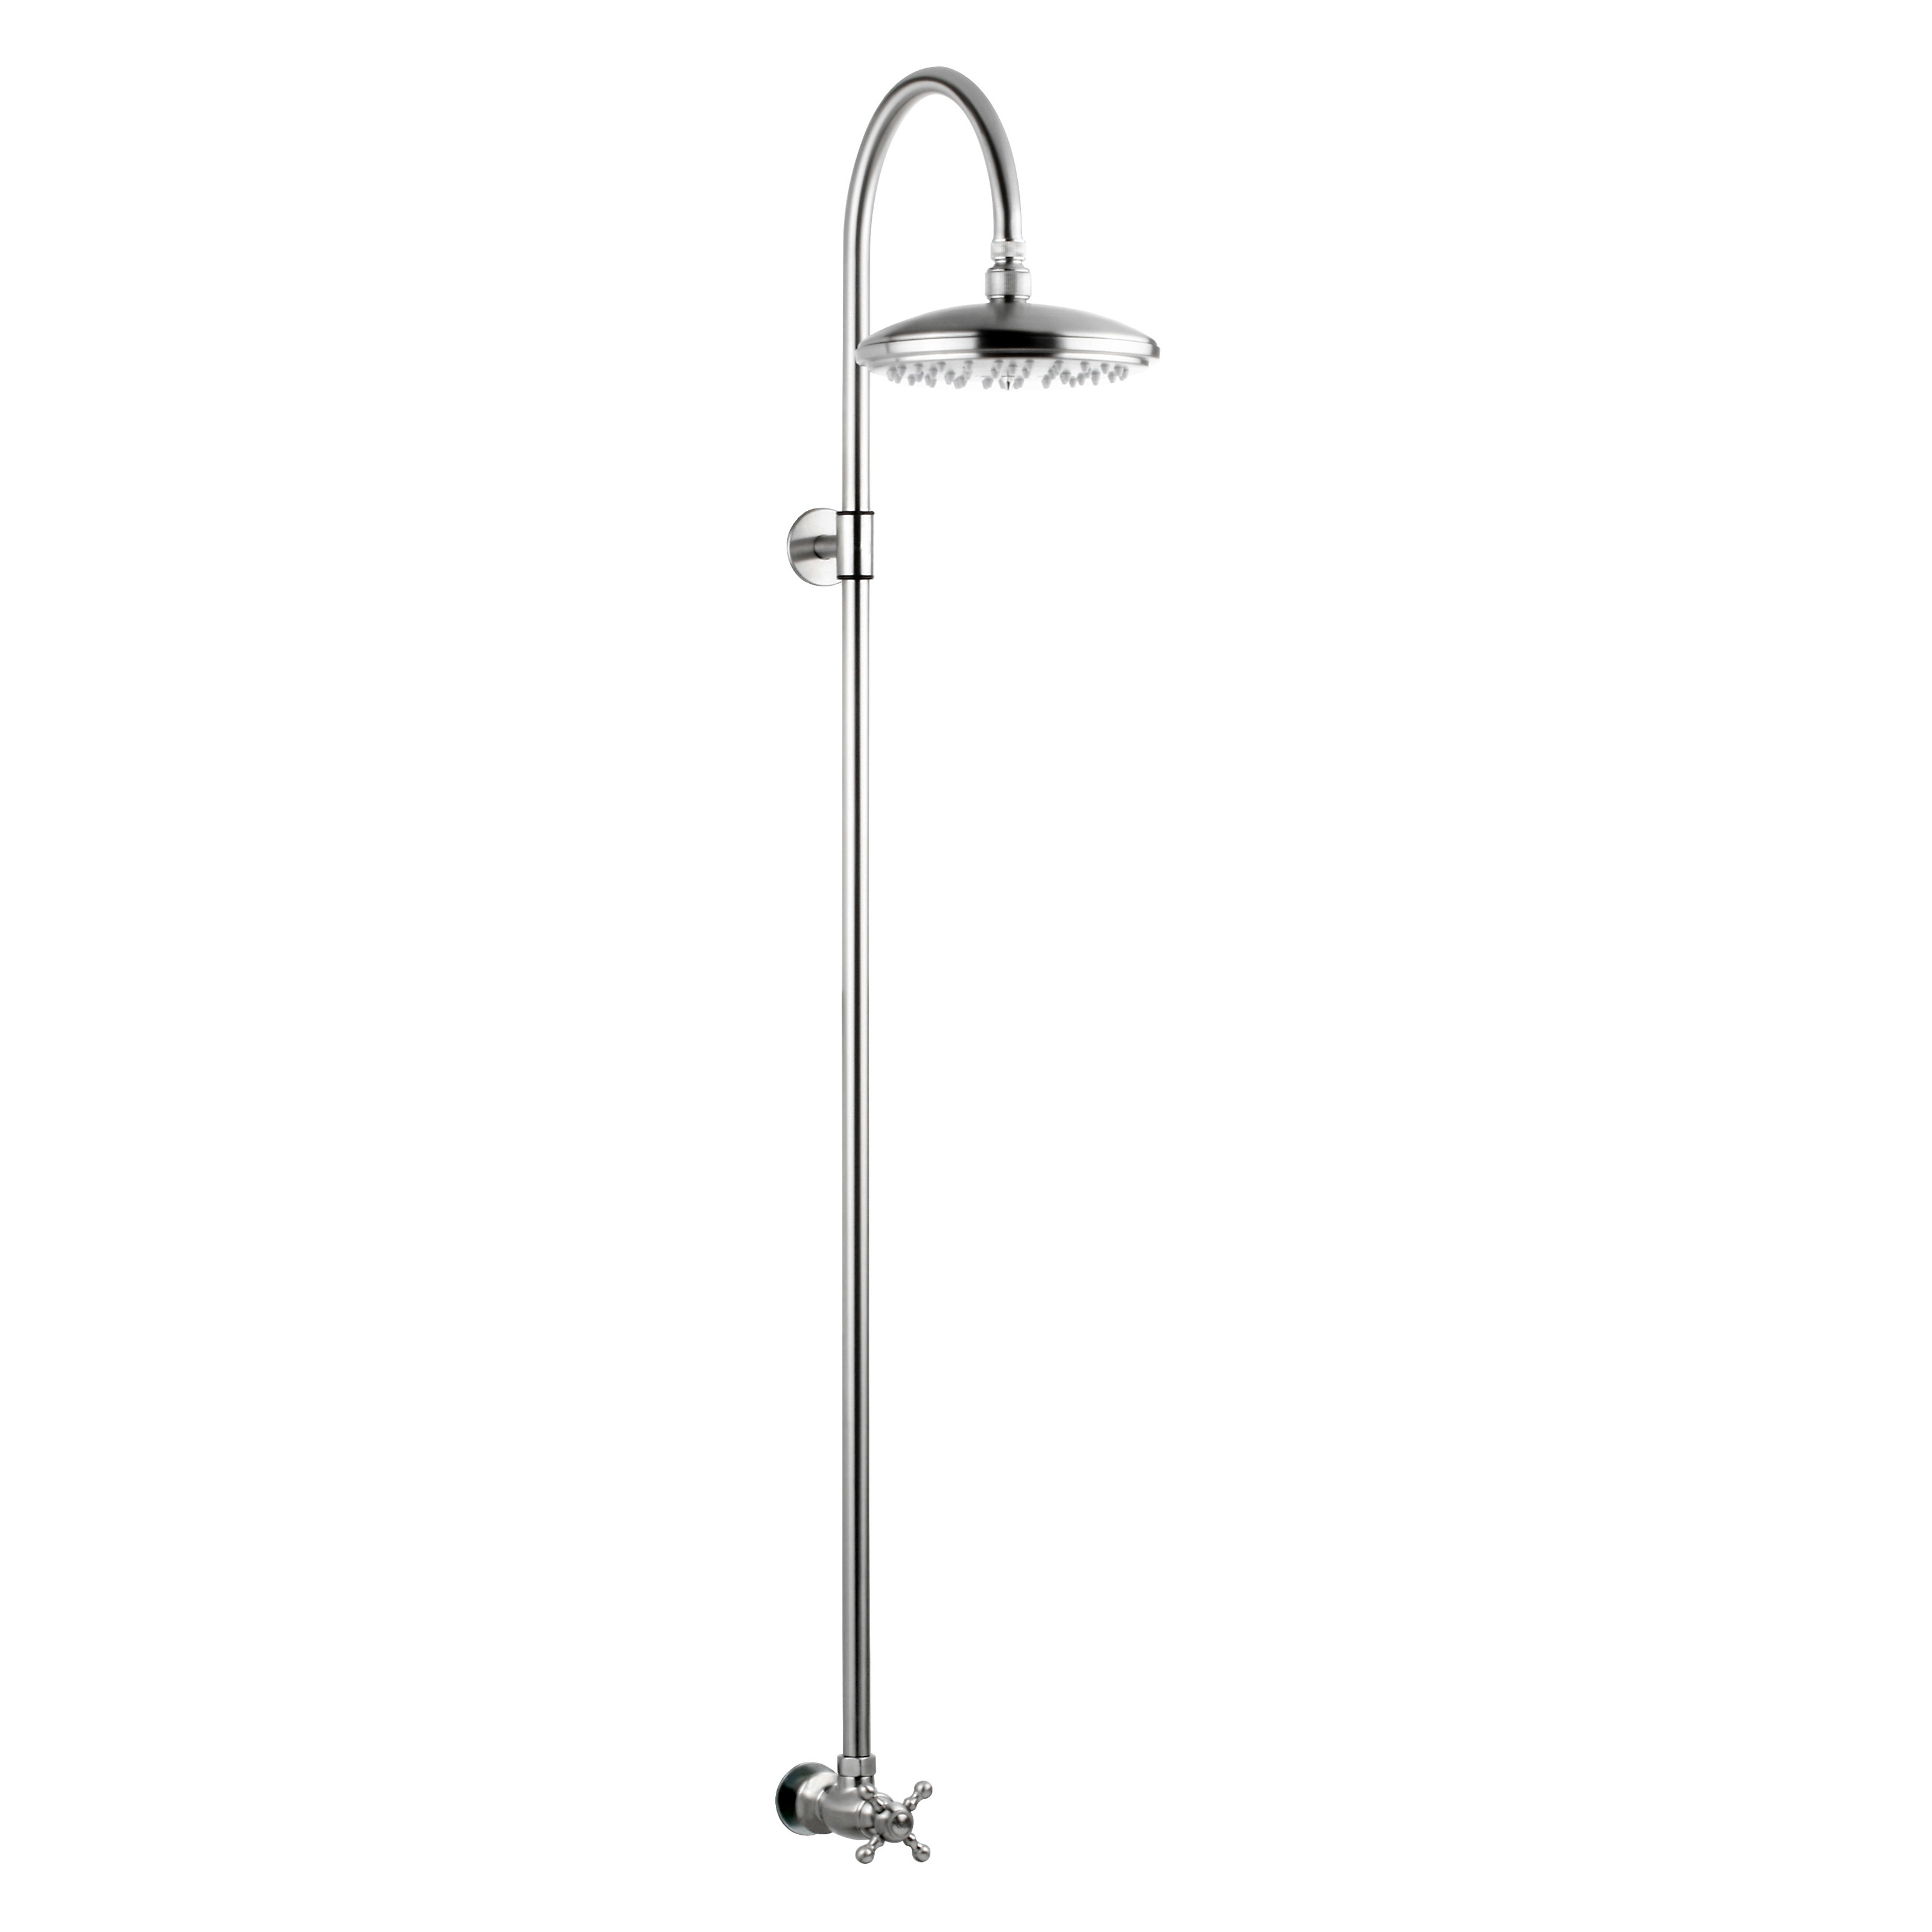 Outdoor Shower Company Stainless Steel Wall Mount Shower | Hayneedle